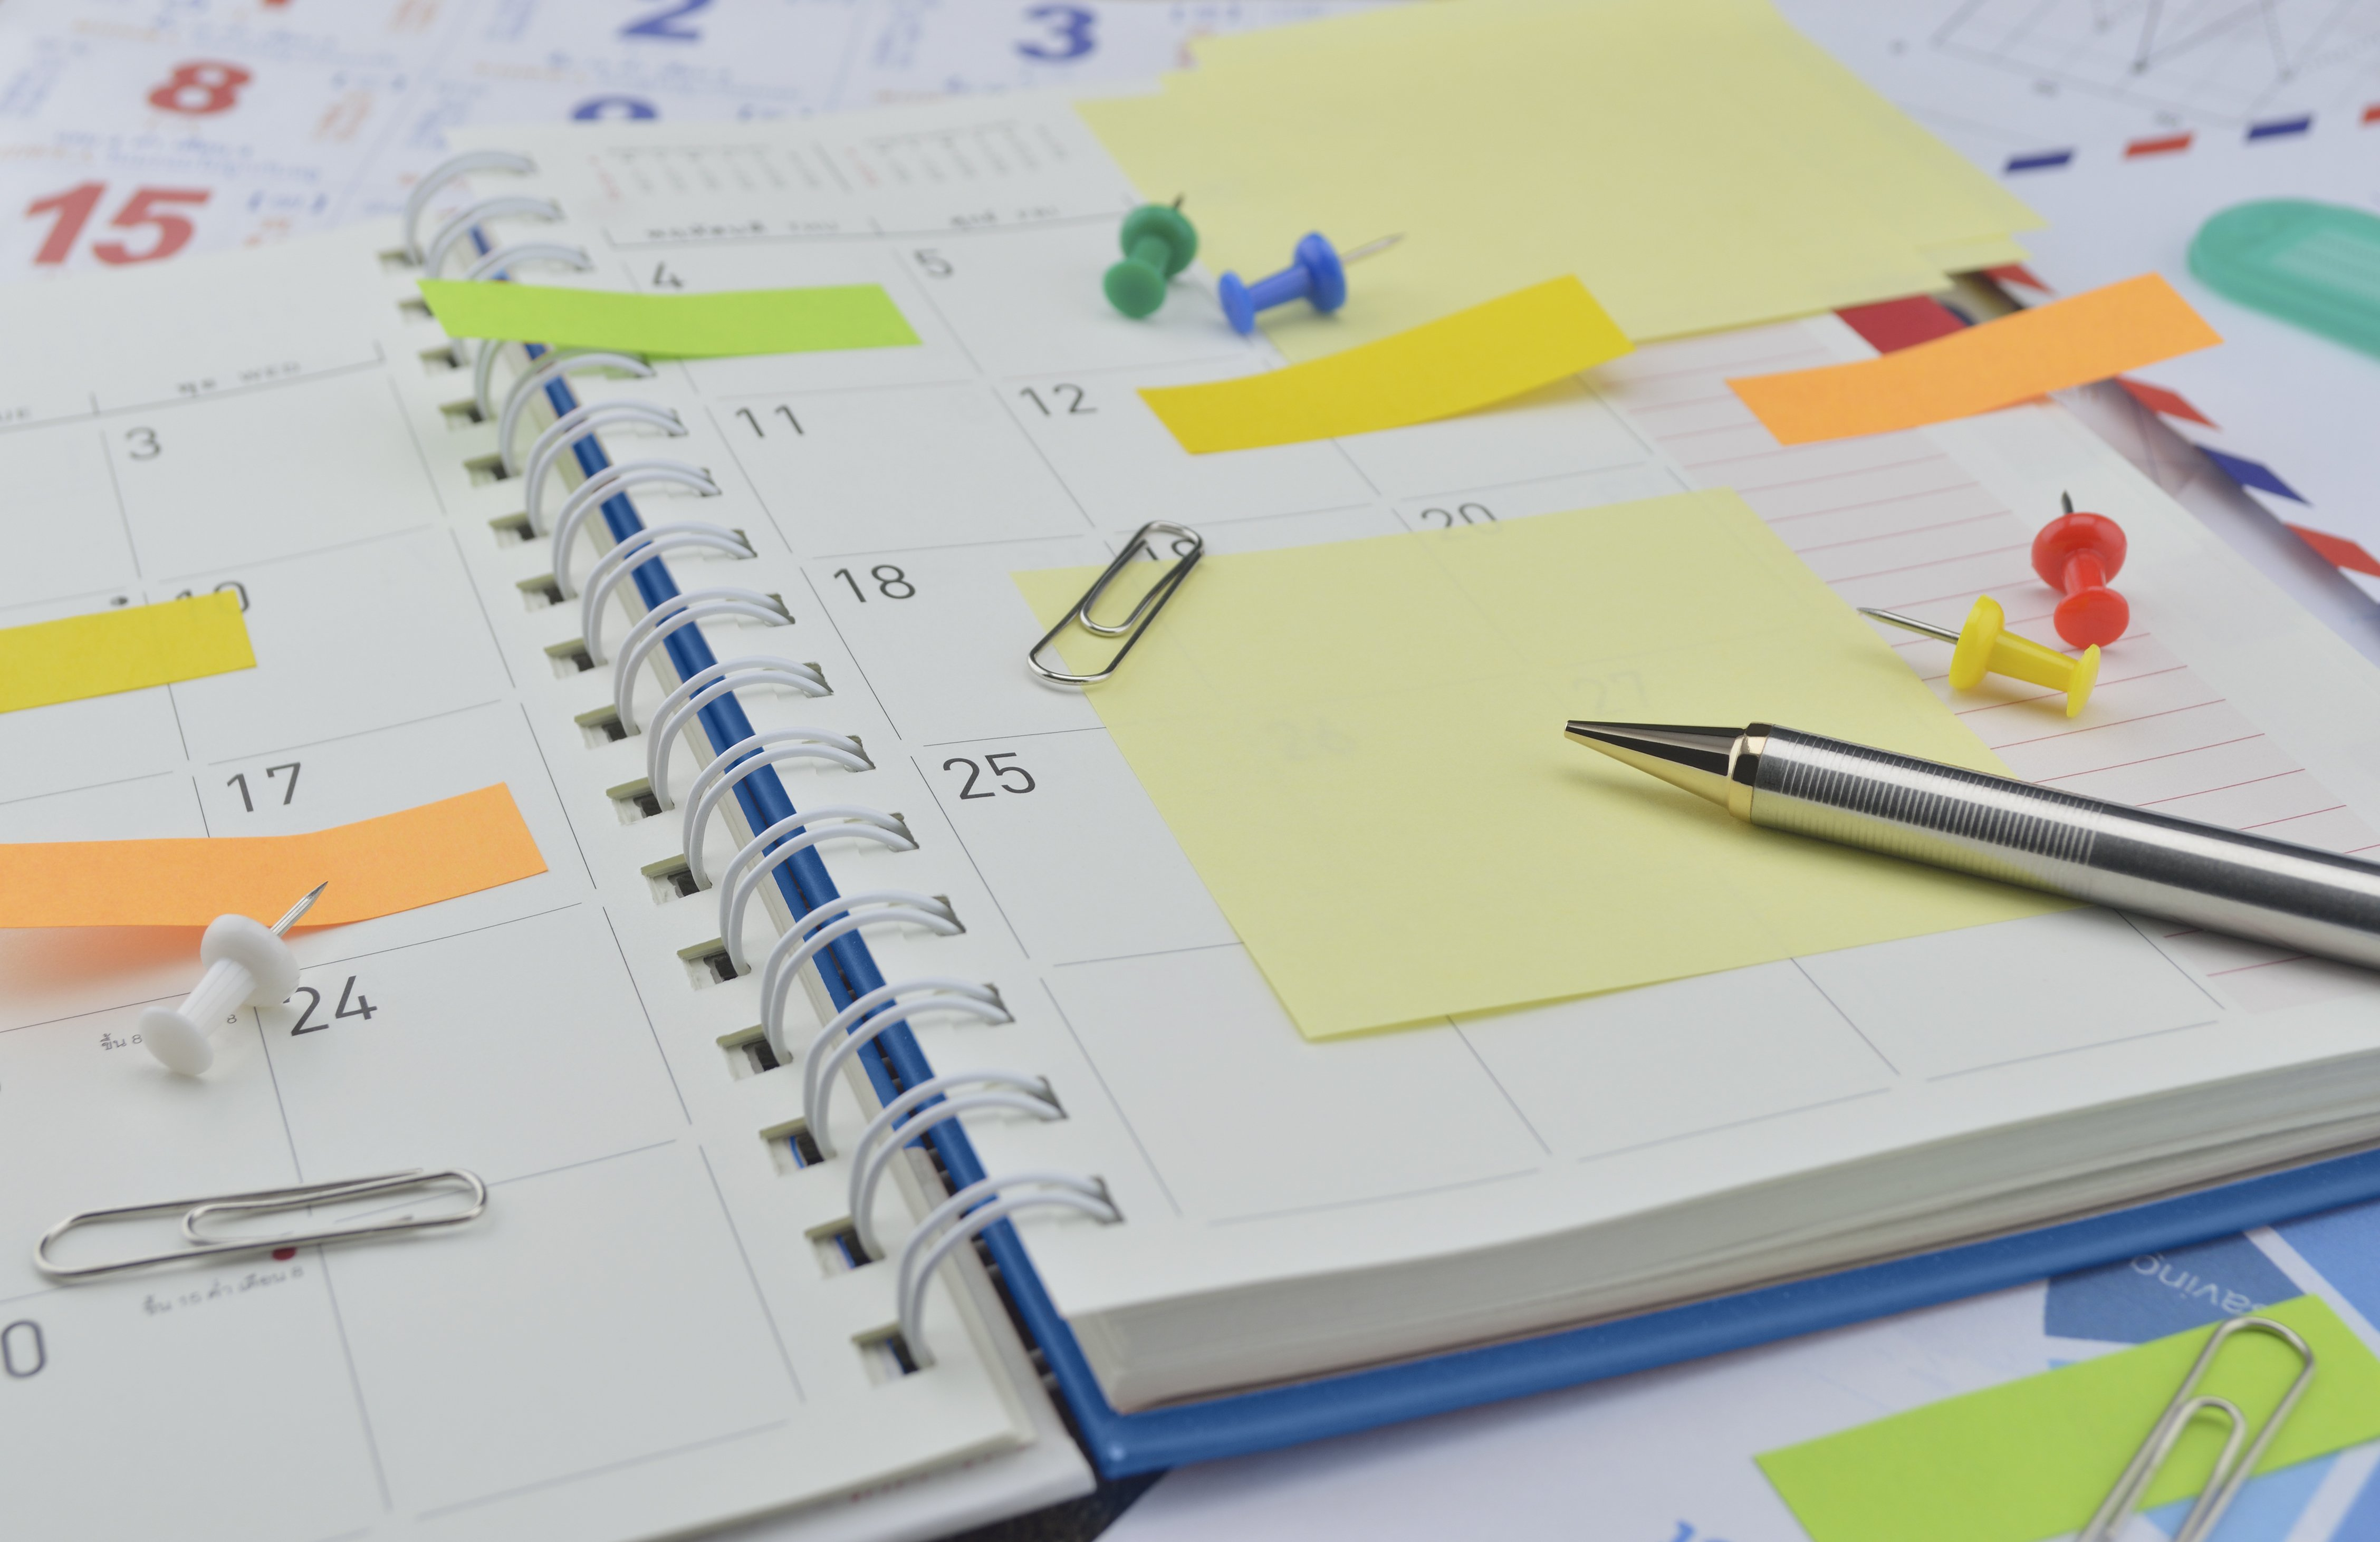 6 ways you can reduce employee scheduling problems